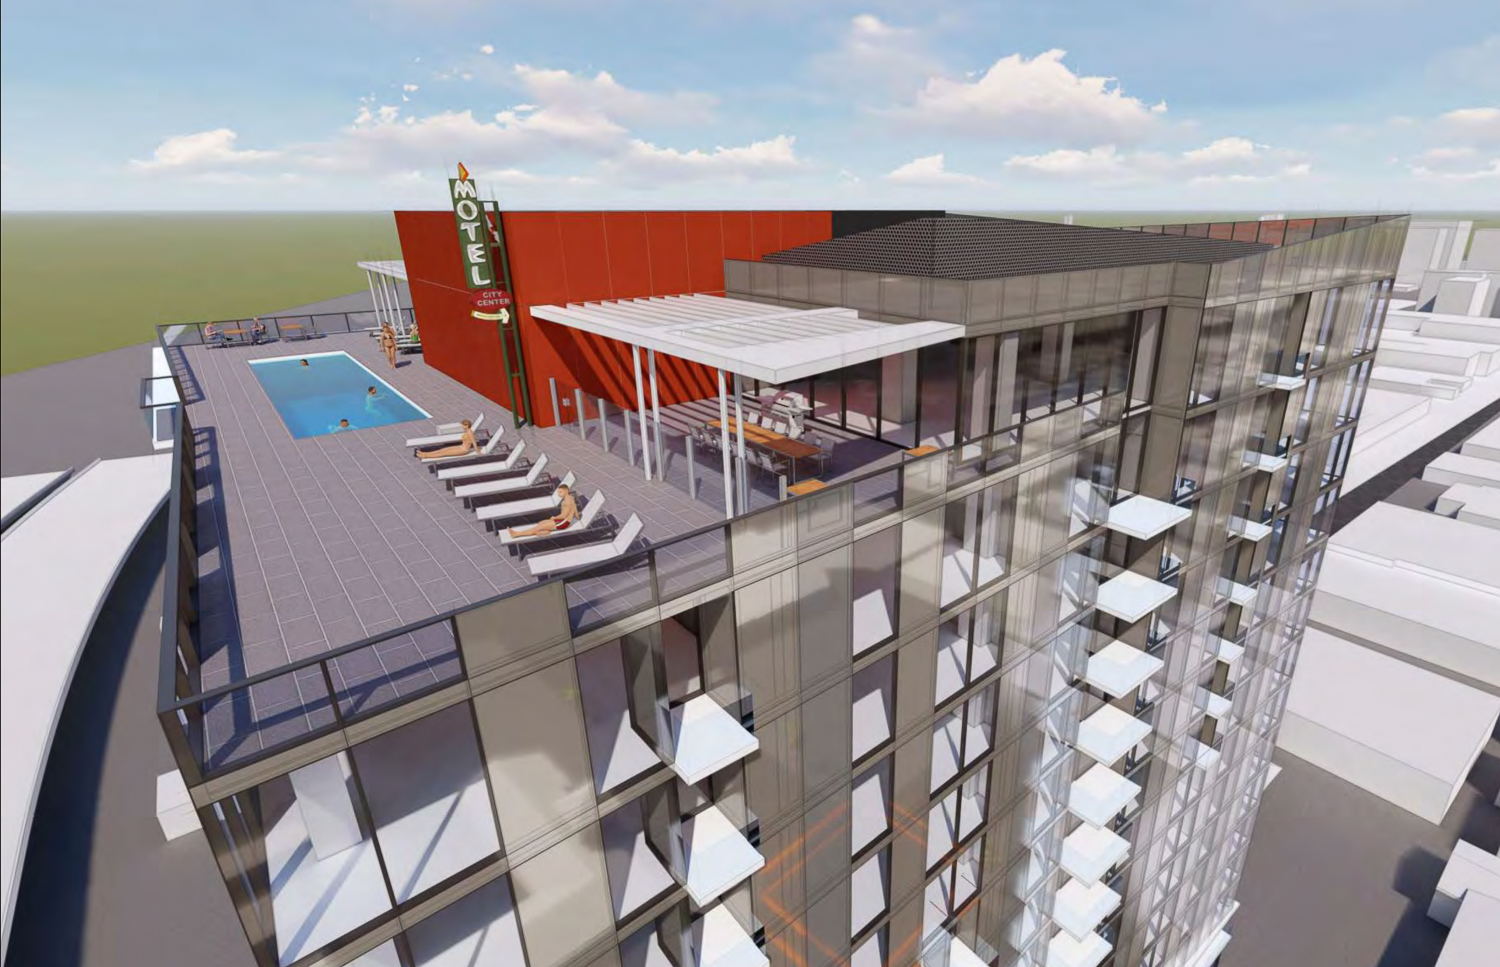 600 South 1st Street Garden Gate tower rooftop terrace, rendering by C2K Architecture